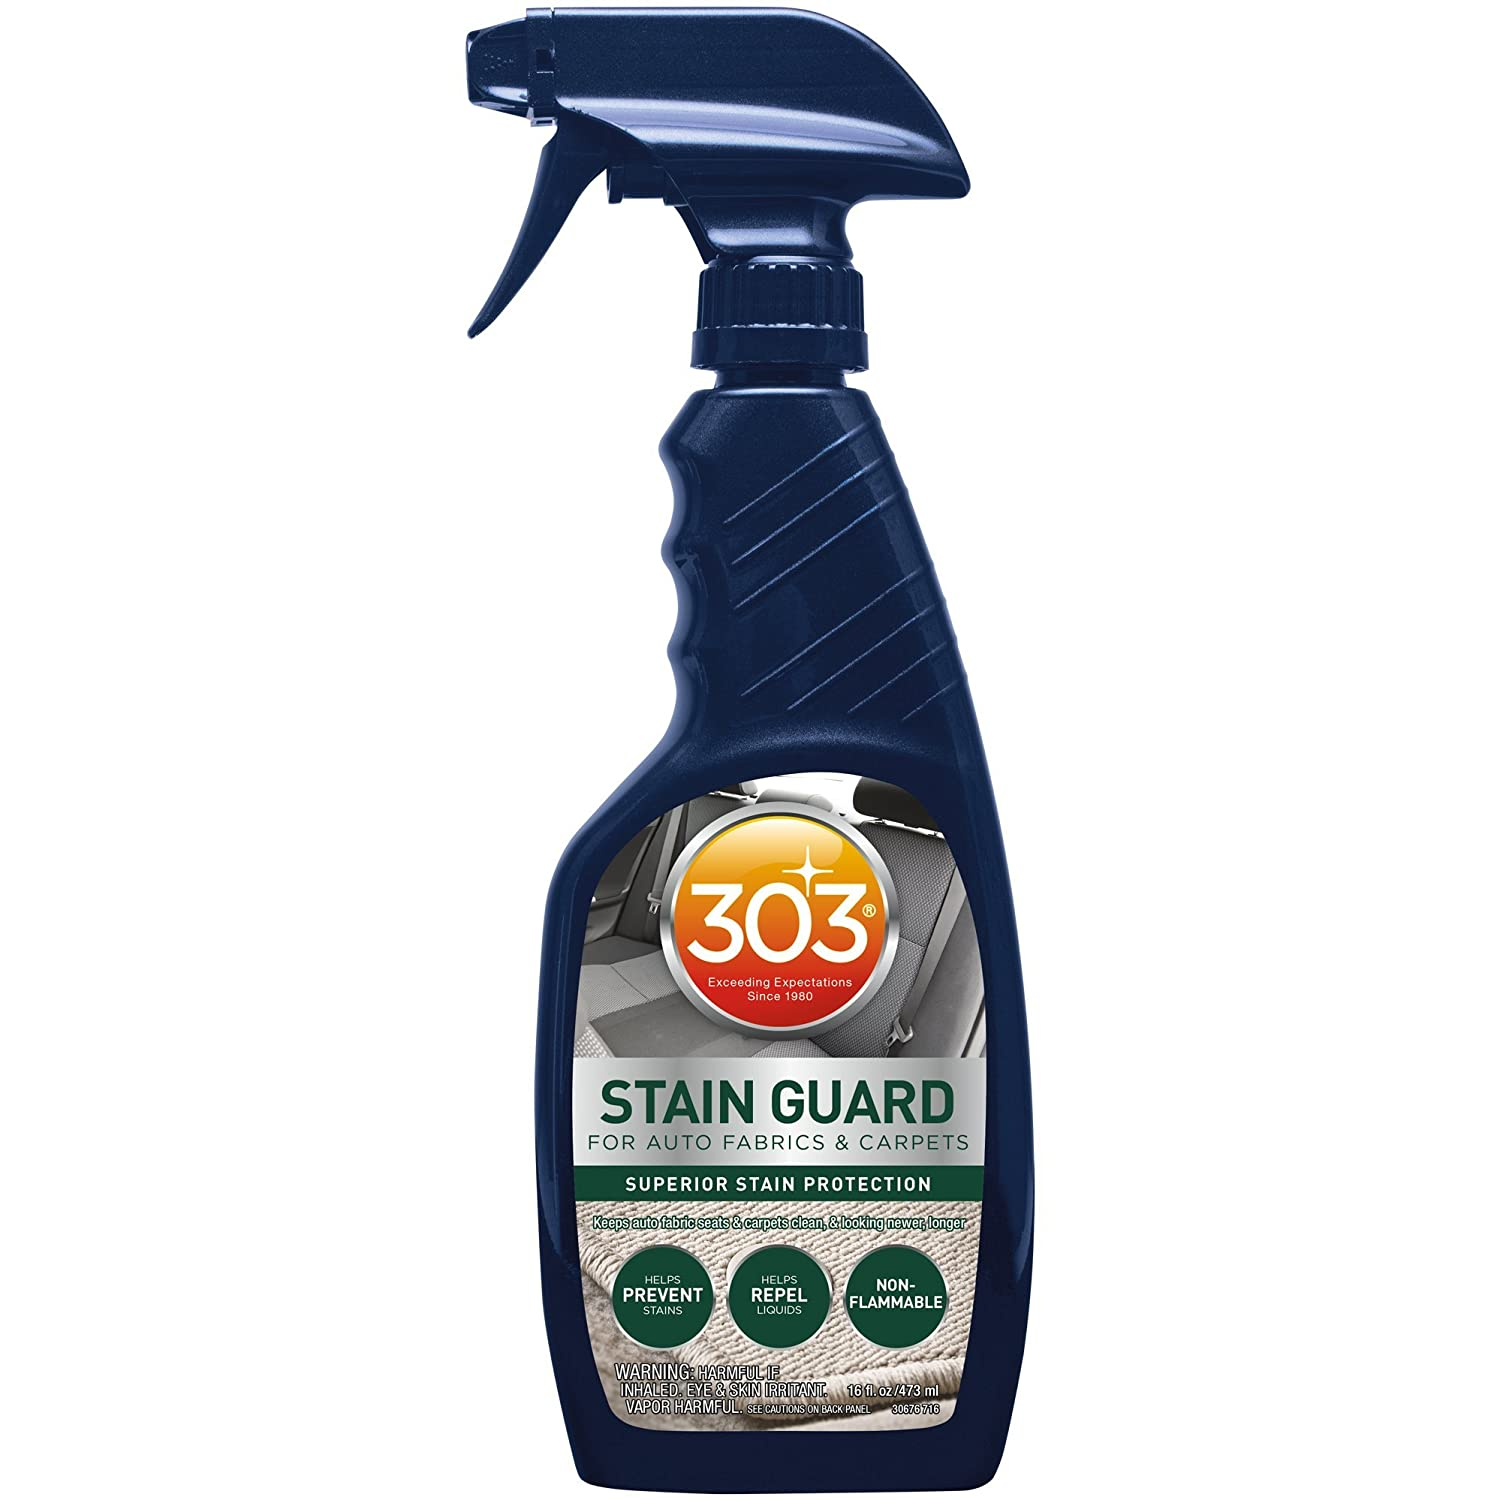 303 (30676-6PK) Fabric Protector Stain Guard Auto Interior Fabrics, Carpets Floor Mats, 16 fl. oz, Pack of 6 303 Products 30676CSR-6PK